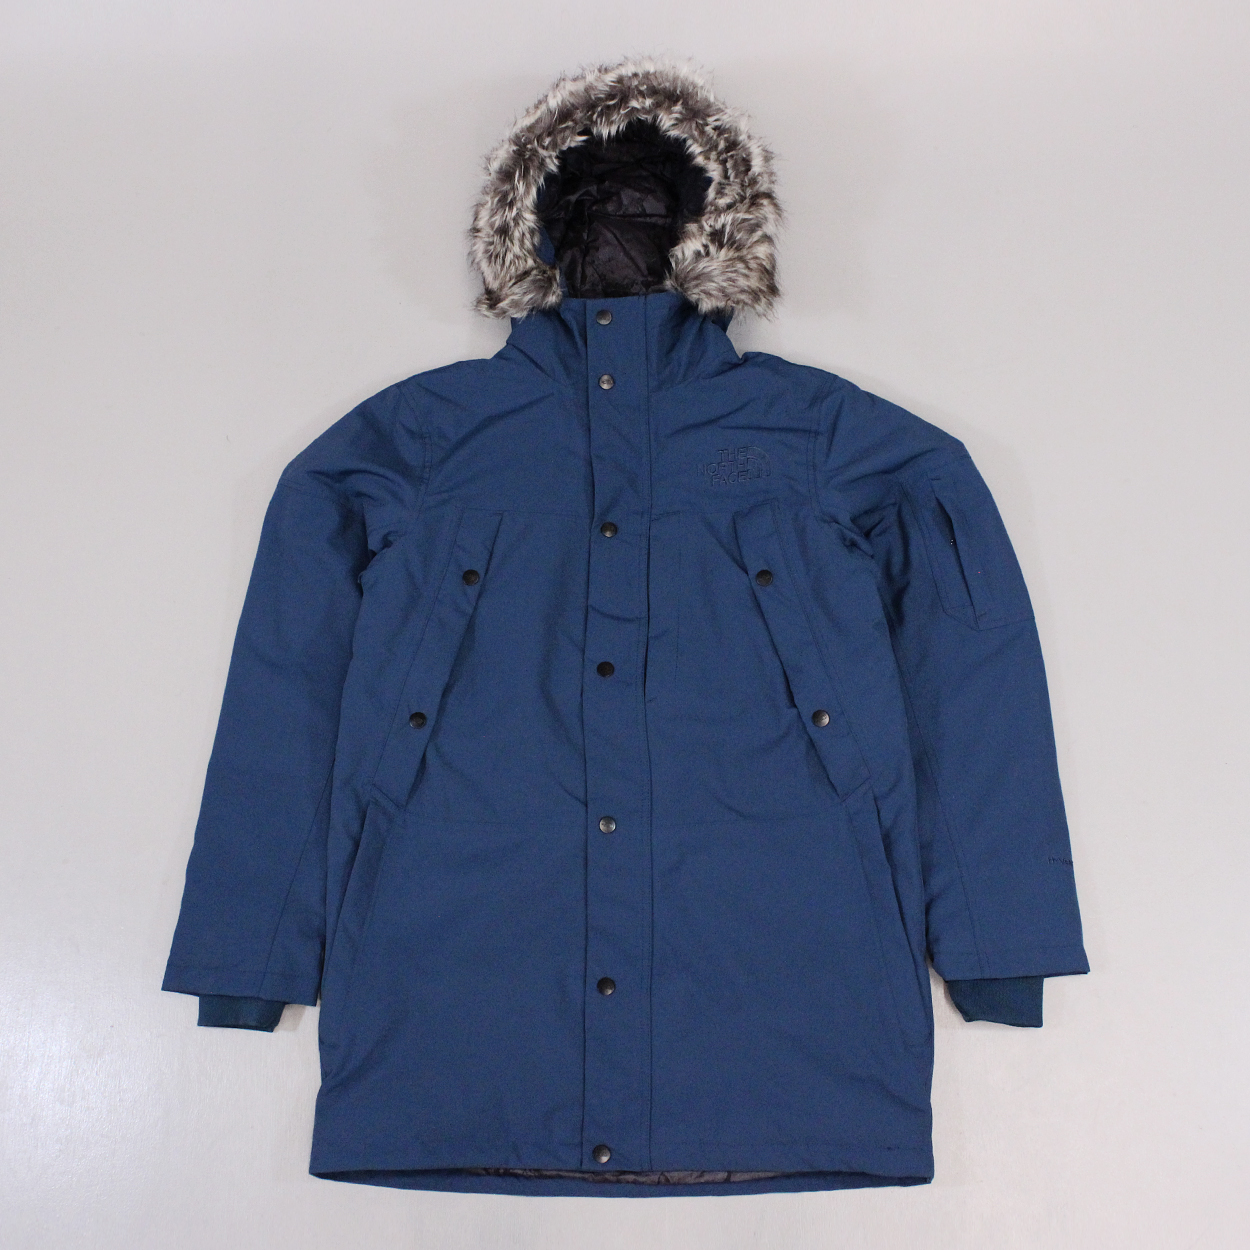 8415112f1ab The North Face Heritage Mens Orcadas Parka Jacket Monterey Blue £231.00